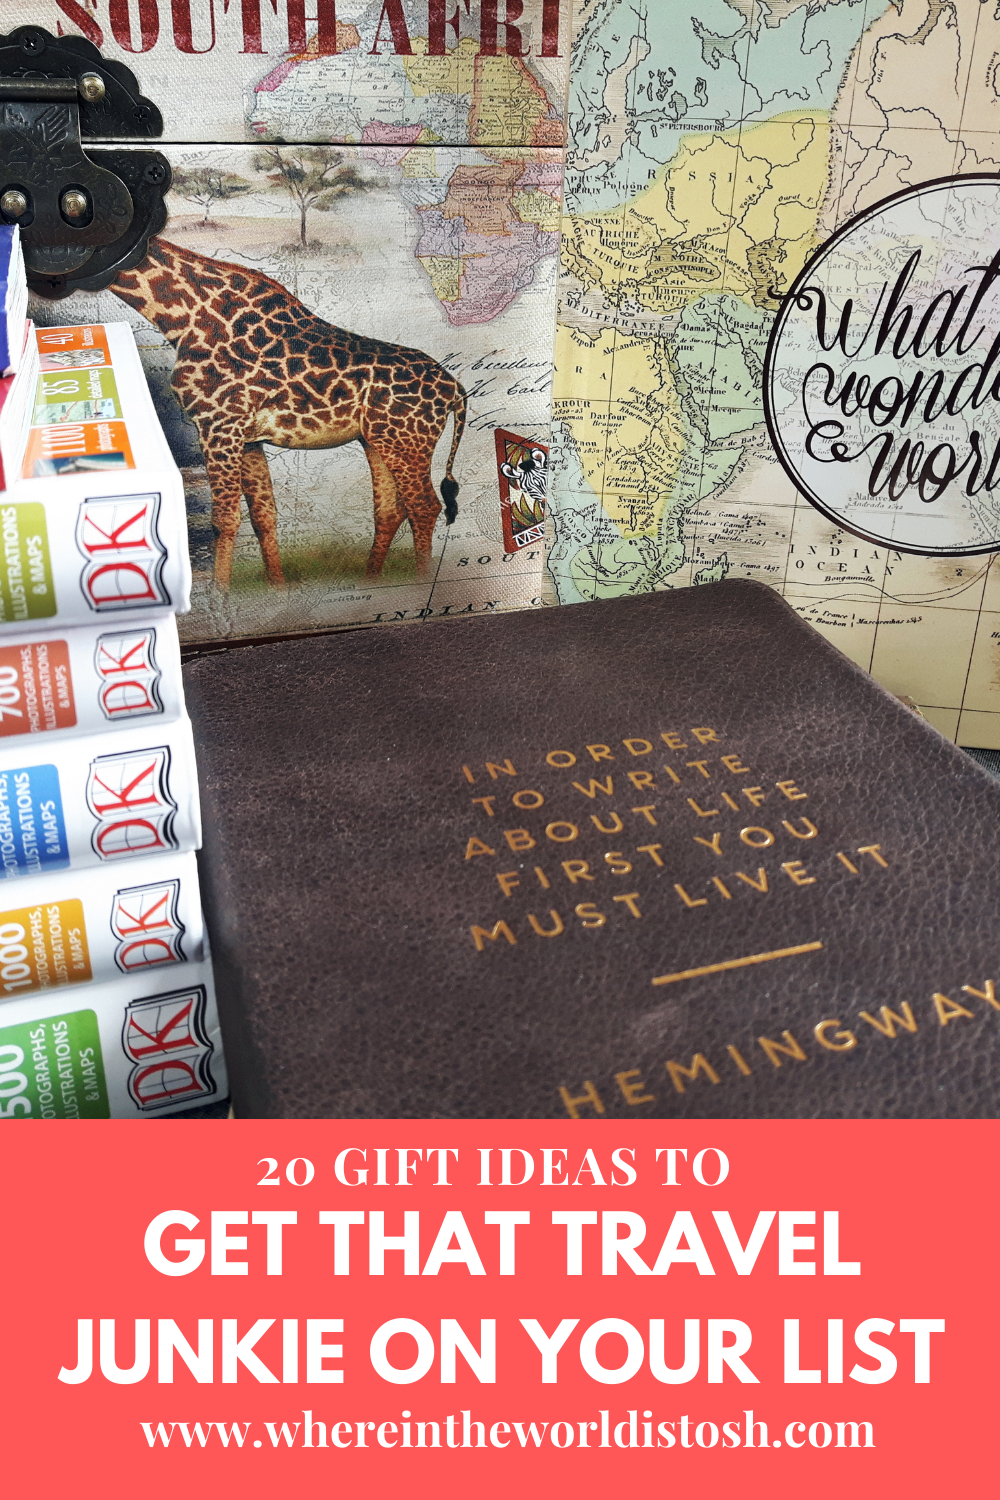 20 Gifts To Get That Travel Junkie On Your List